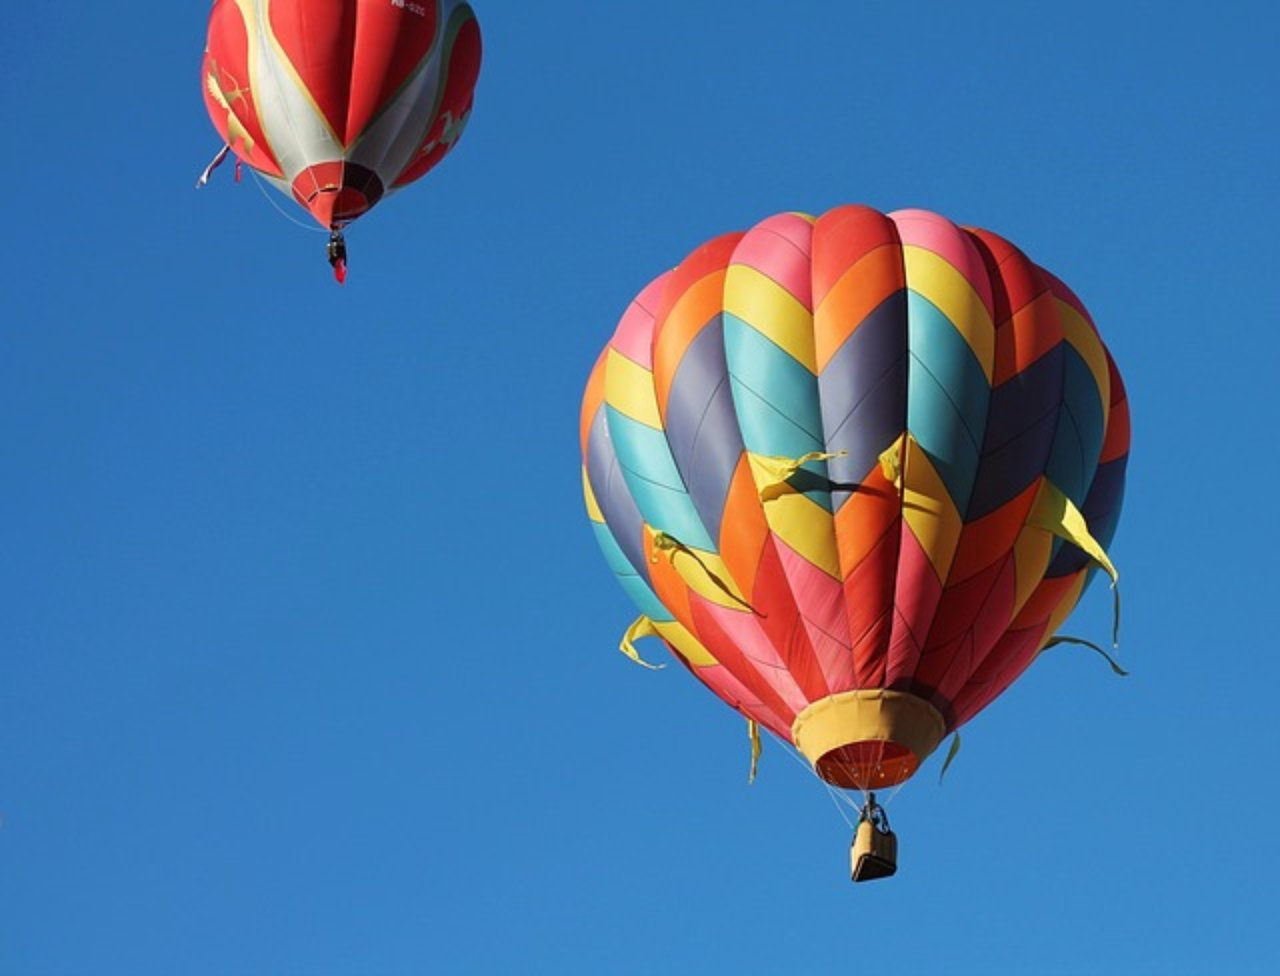 North Valley is home to the International Balloon Fiesta grounds